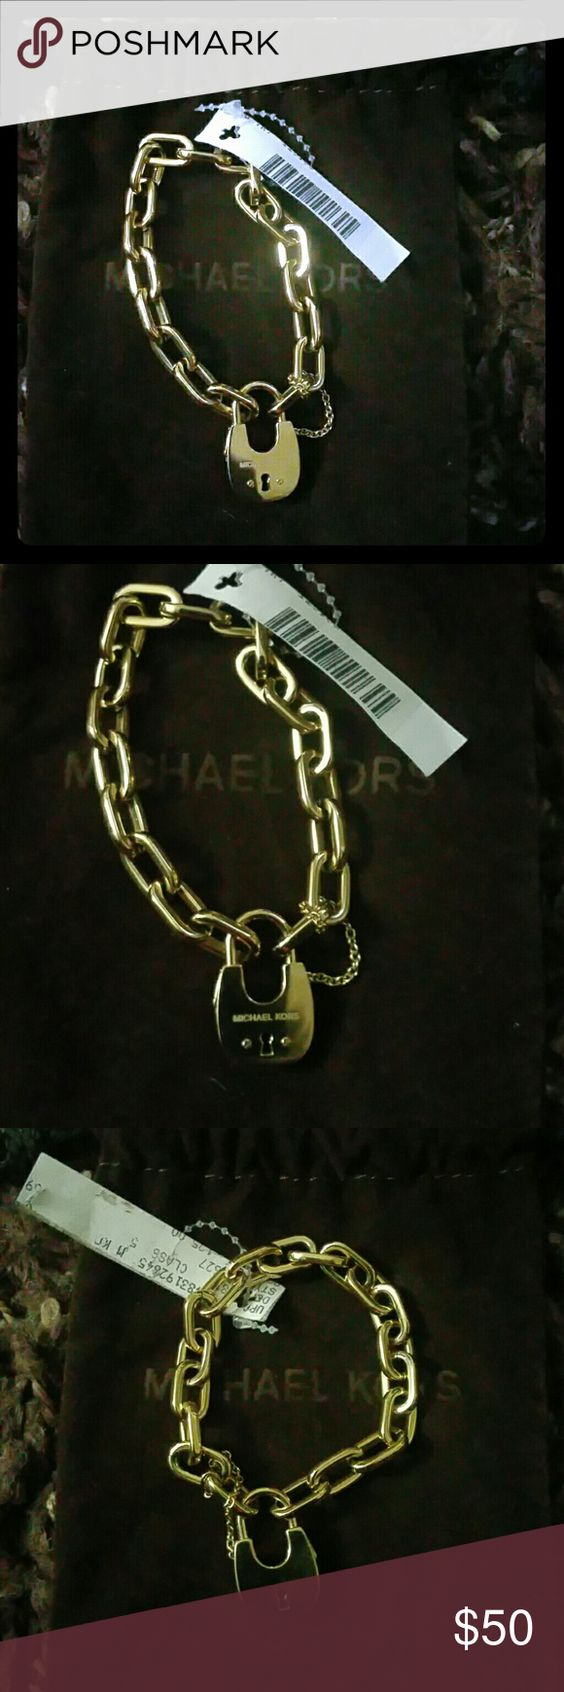 Michael Kors Chain Link Padlock Bracelet Beautiful, trendy, brand new, store retag attached, Michael Kors Chain Link bracelet in Gold tone. Comes with MK jewelry bag. Michael Kors Jewelry Bracelets